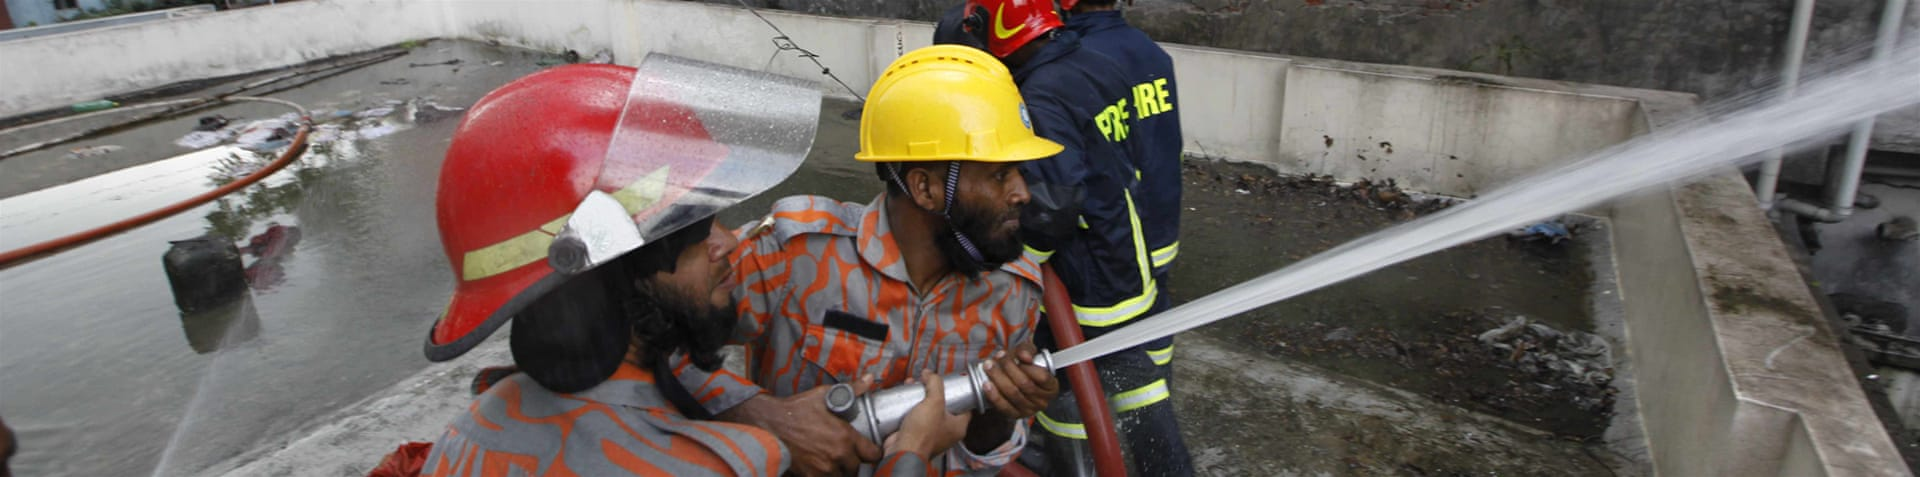 Weak fire protection systems are common in factories in Bangladesh [Mahmud Hossain Opu/Al Jazeera]